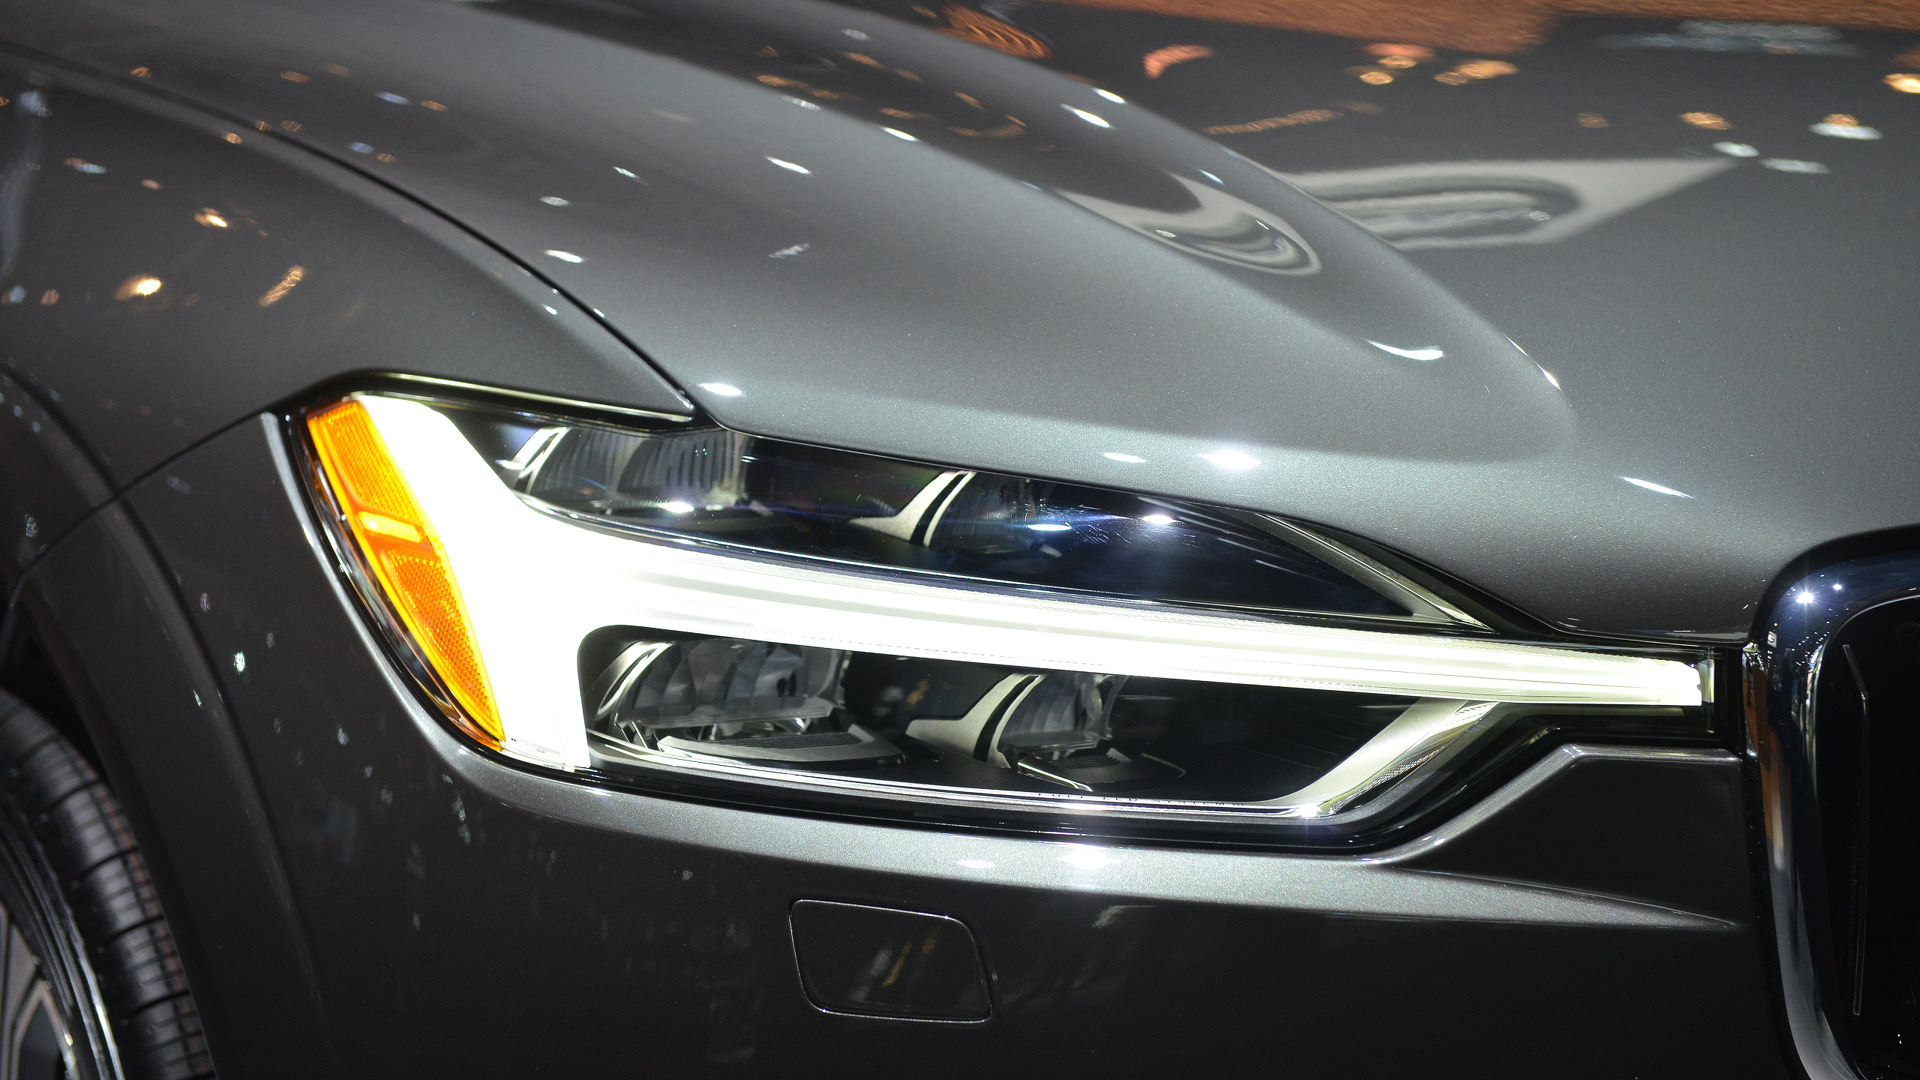 IIHS: Most SUV Headlights Fail To Light Up Newest Ratings